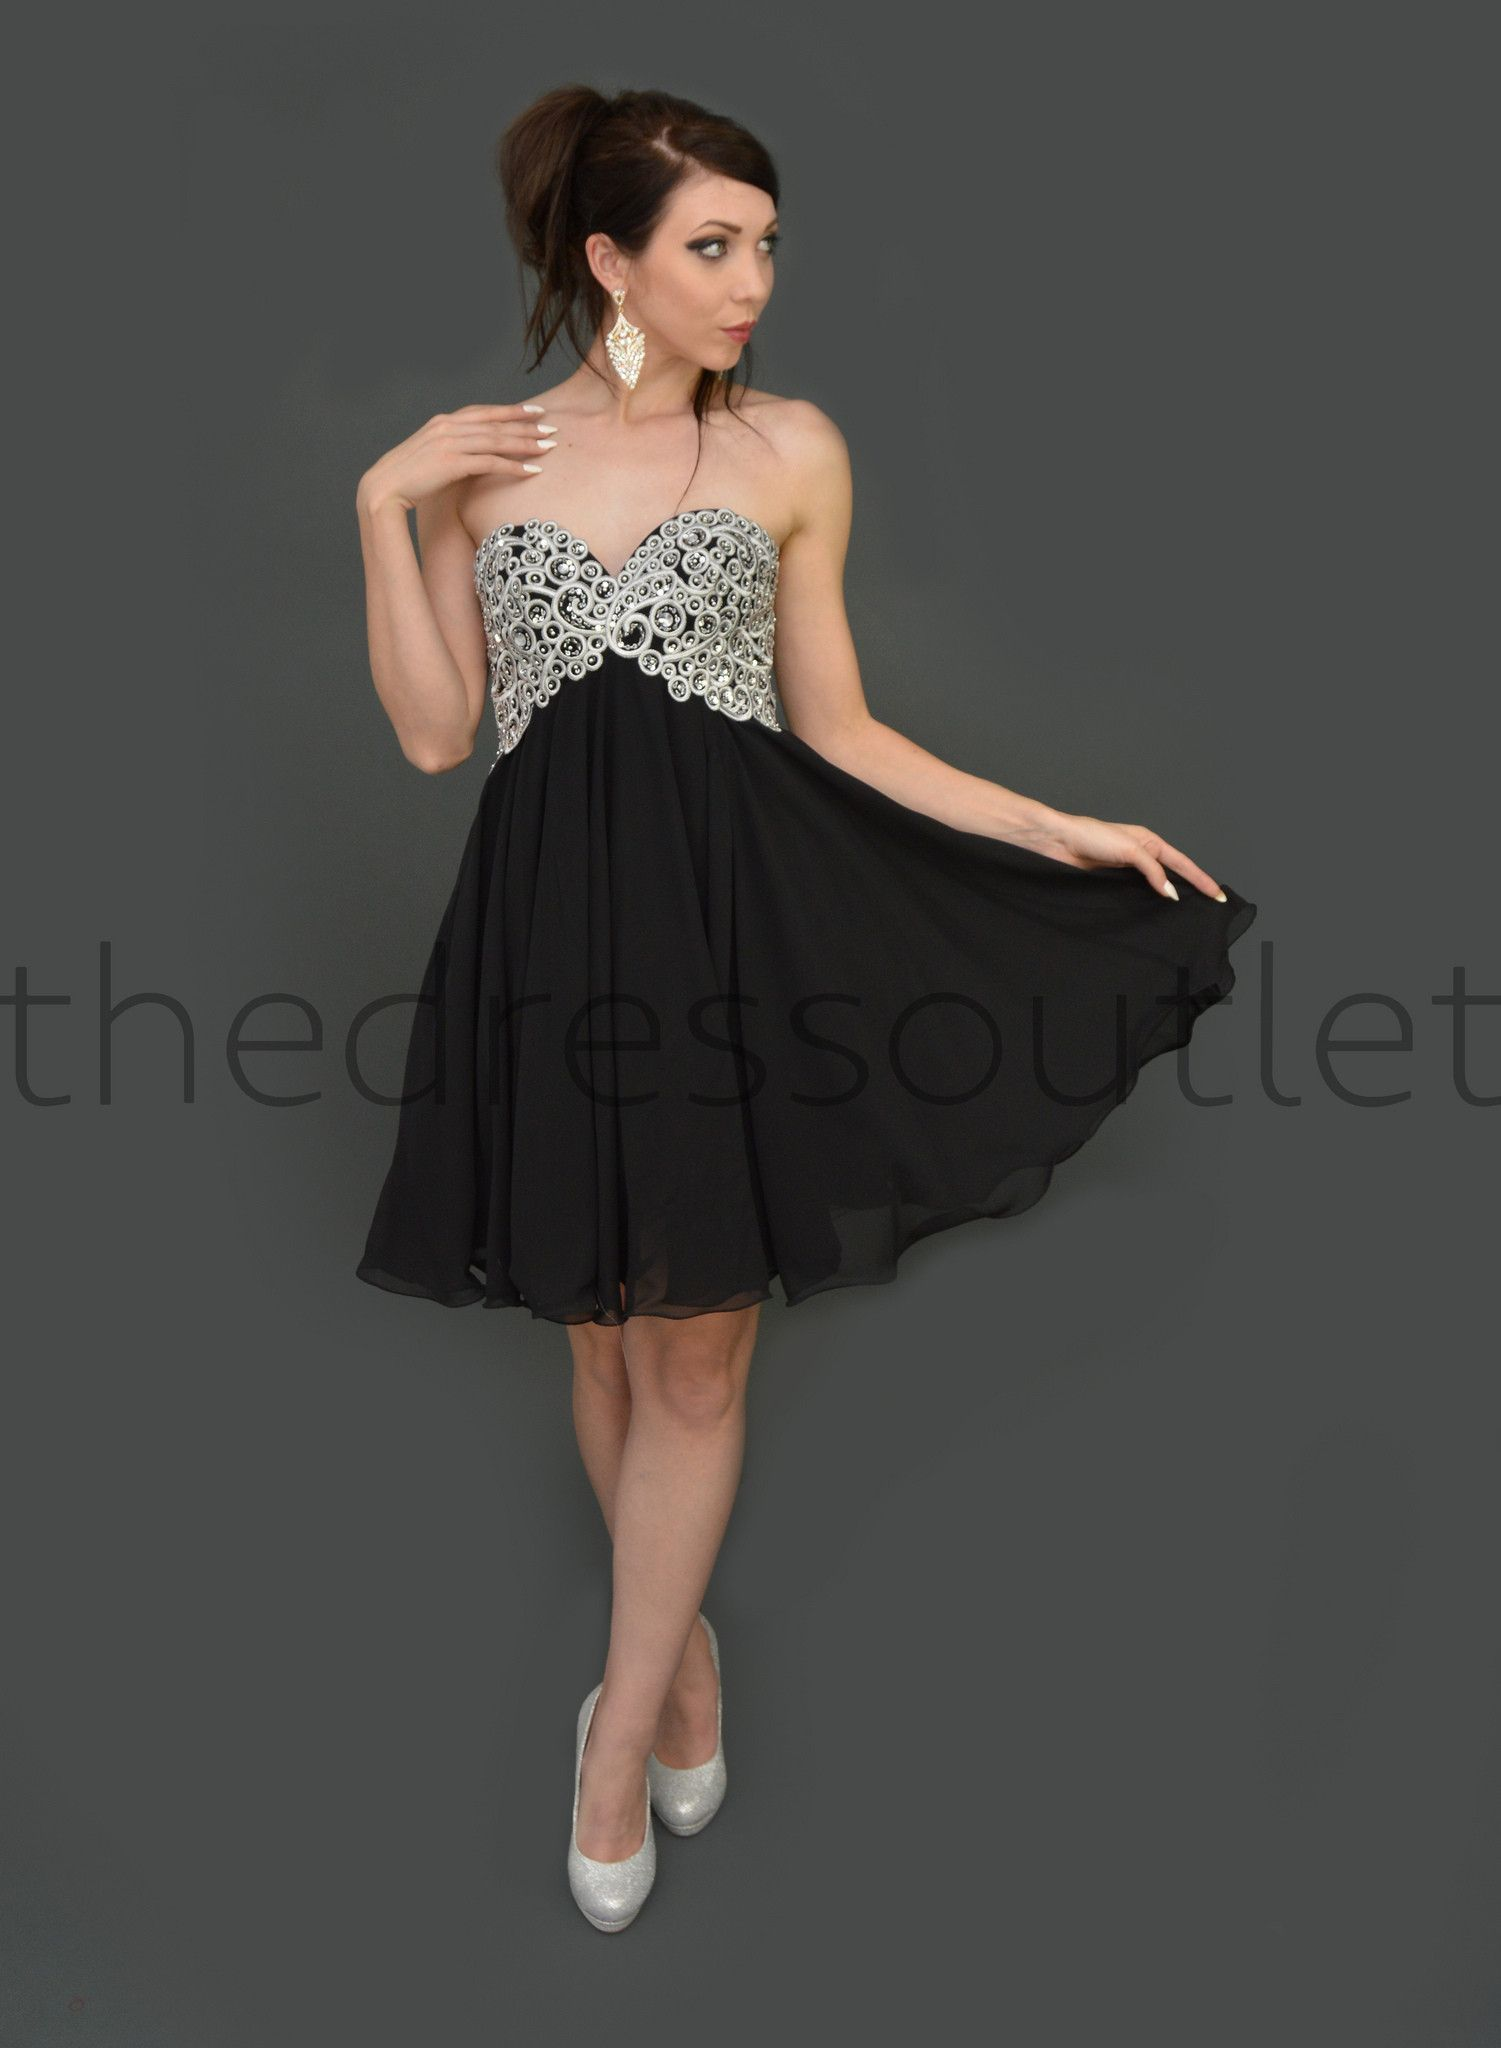 Bohemian homecoming strapless chiffon prom short cocktail mini dress